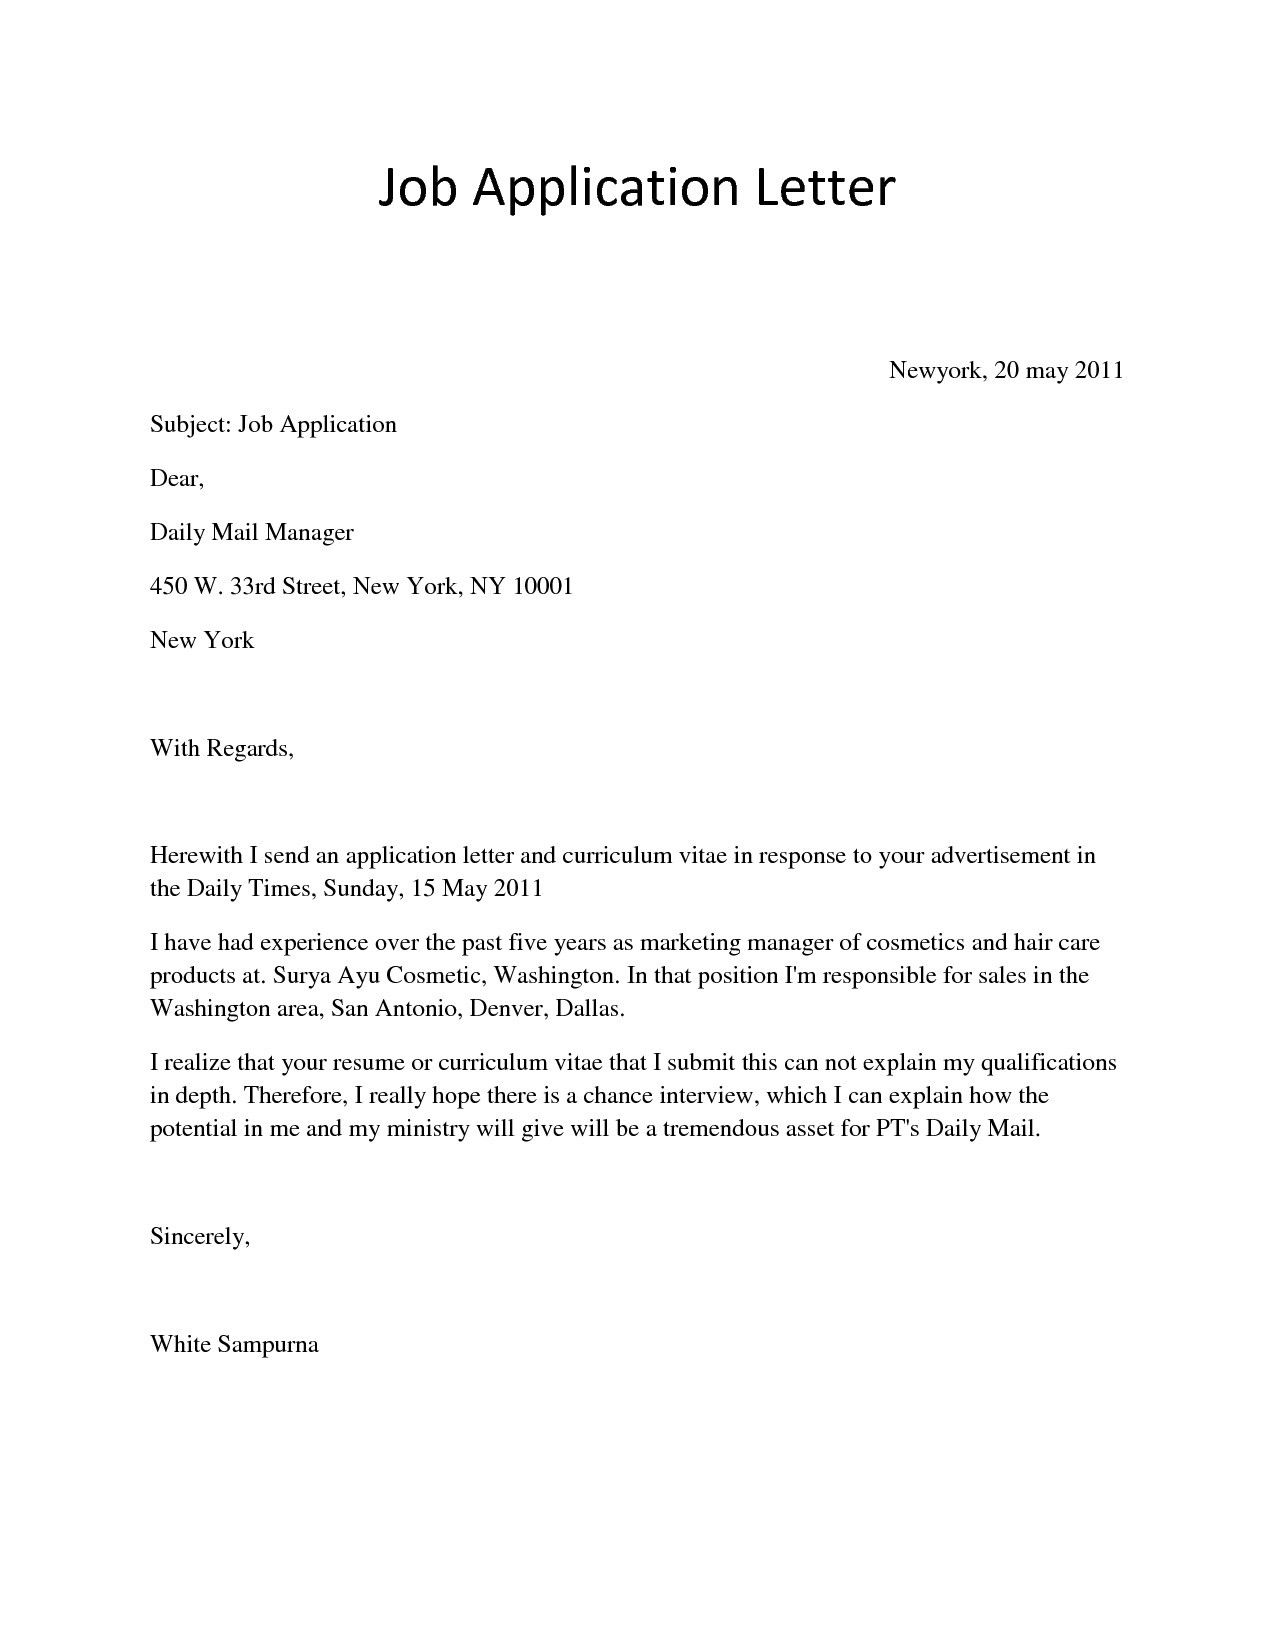 Cover Letter Template Ngo Simple Job Application Letter Simple